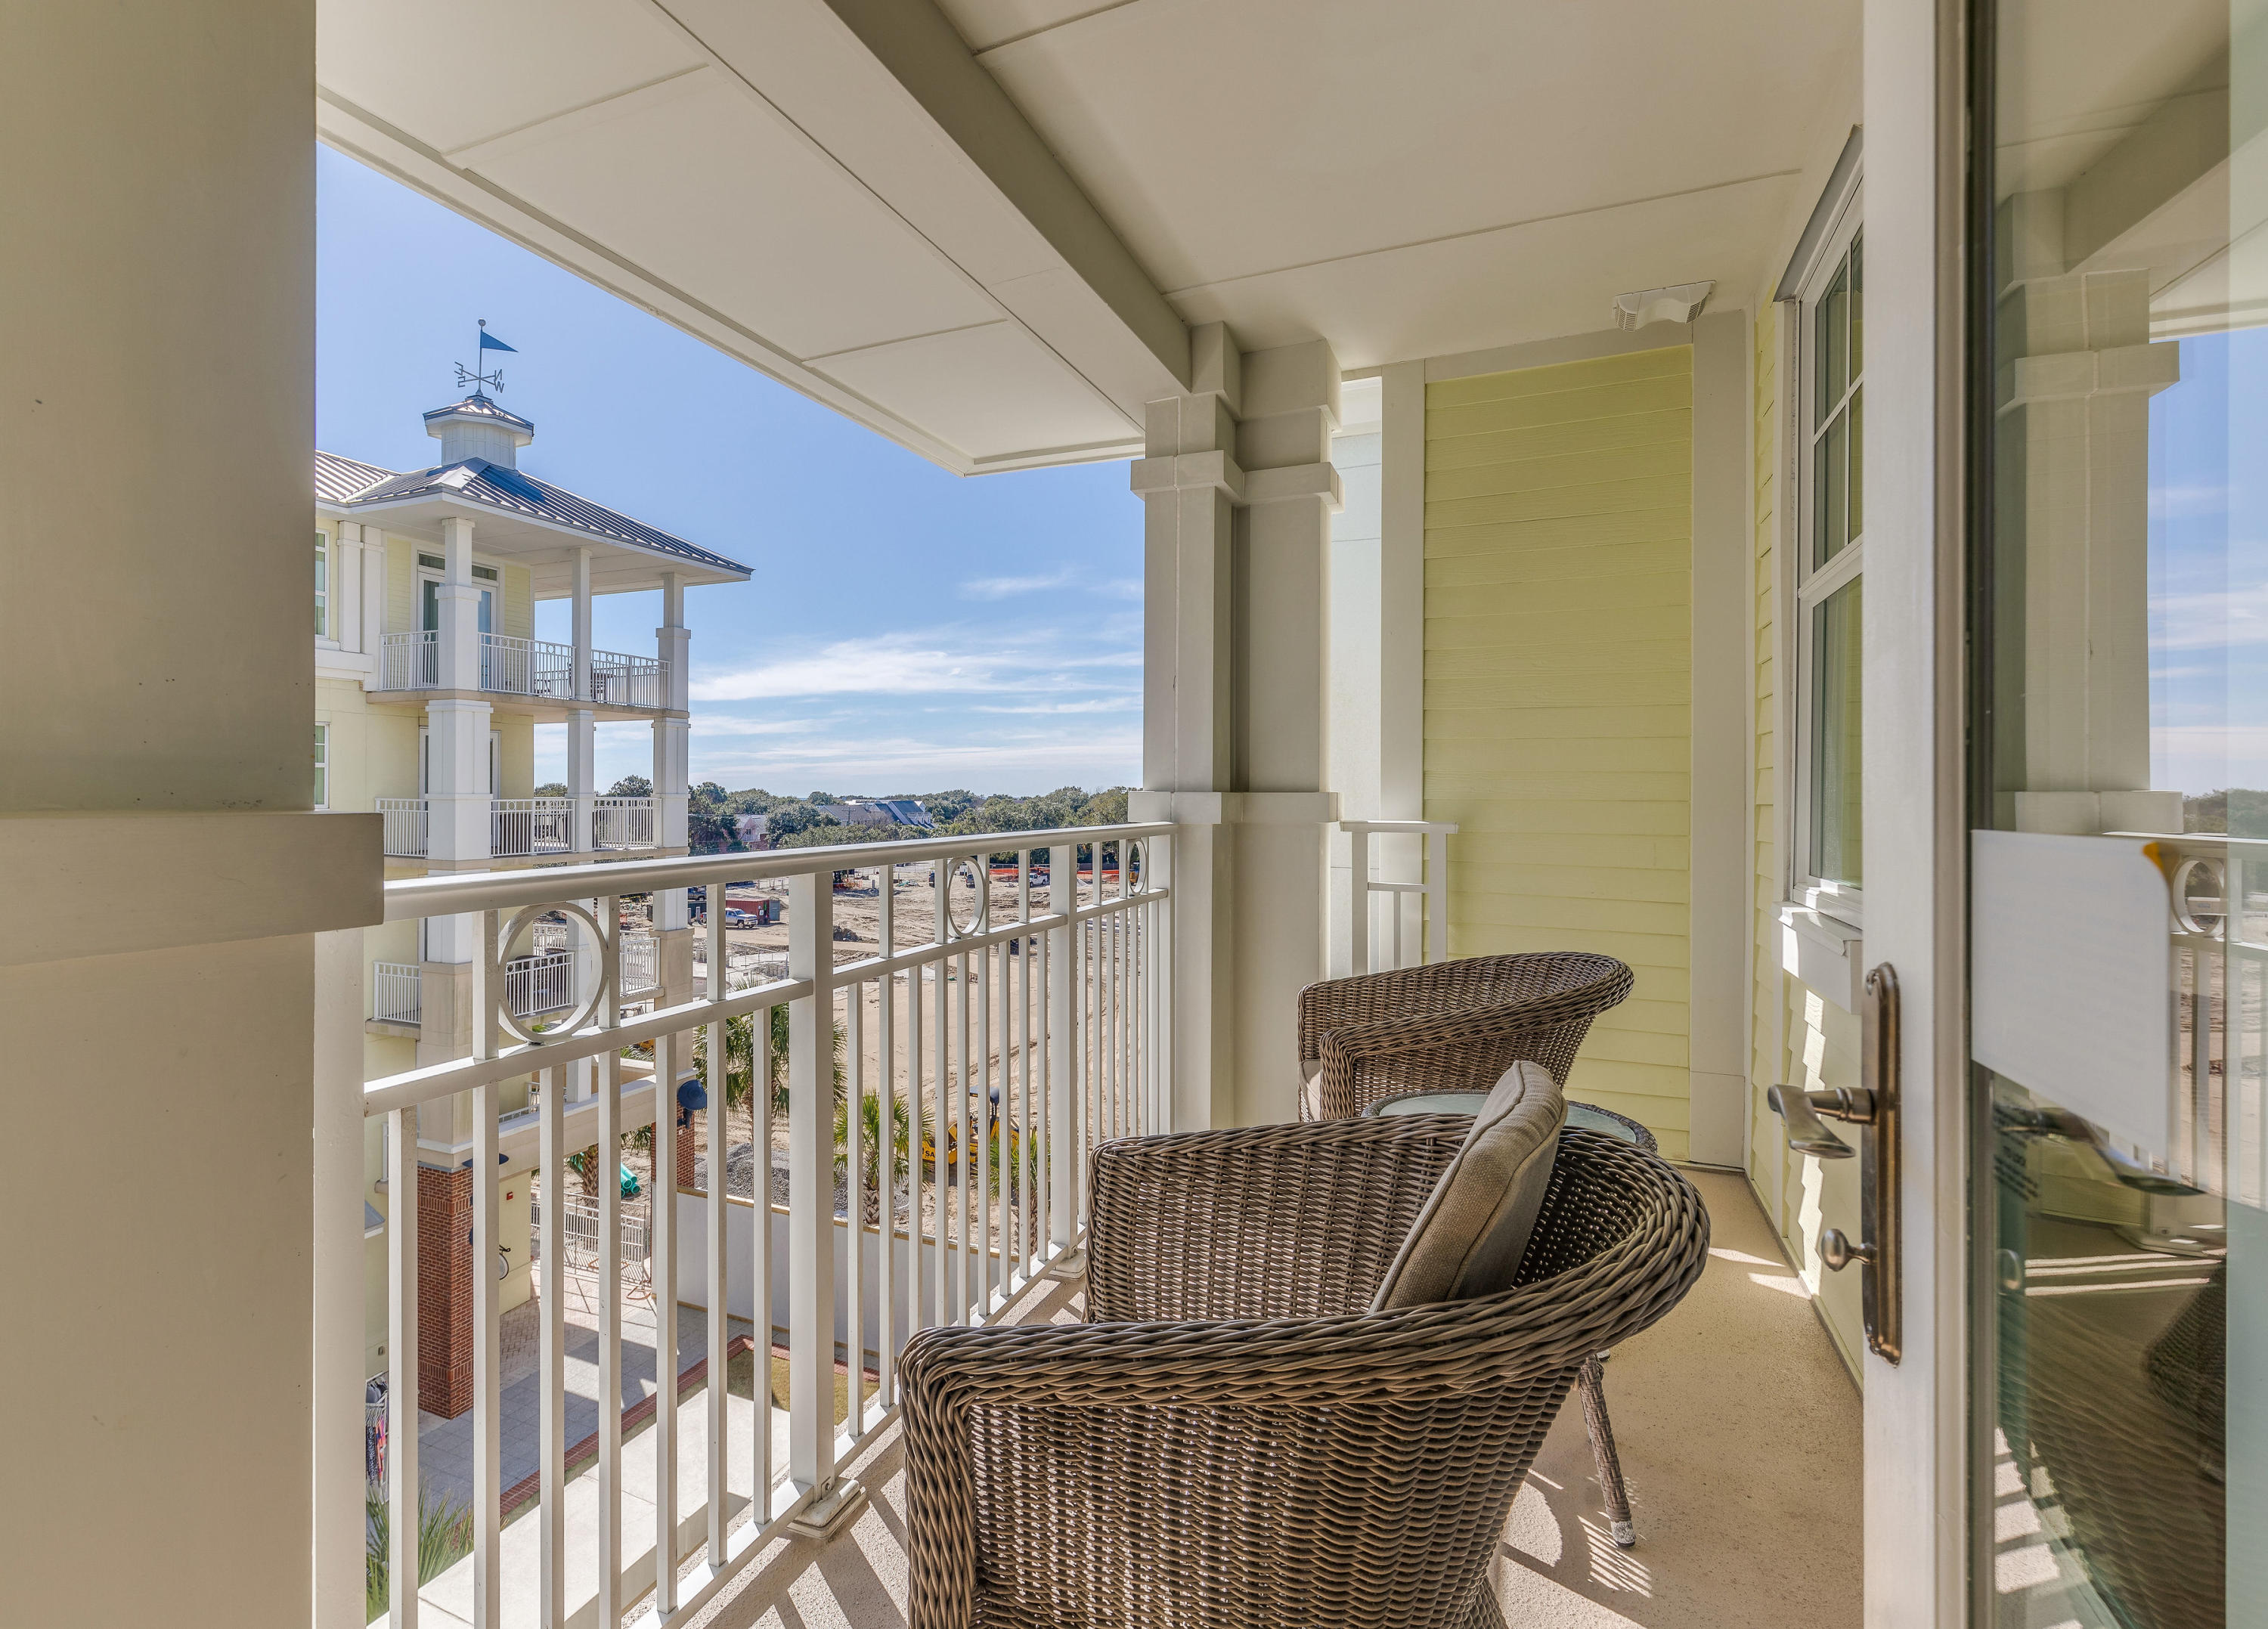 Wild Dunes Homes For Sale - 410-A Village At Wild Dunes, Isle of Palms, SC - 15